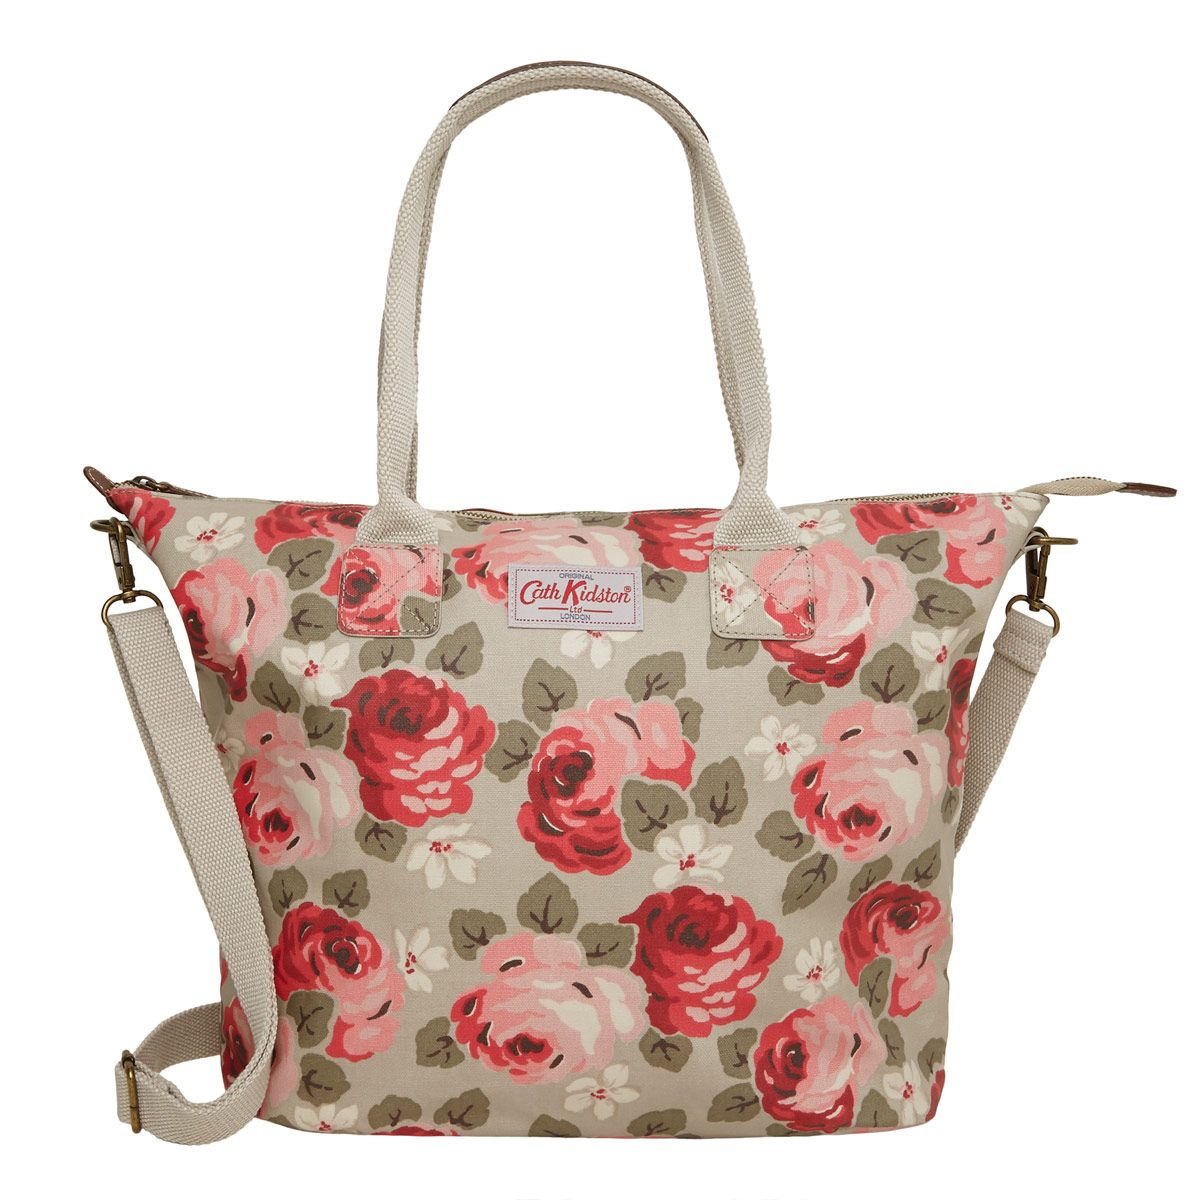 View All Aubrey Rose Tall Zipped Tote